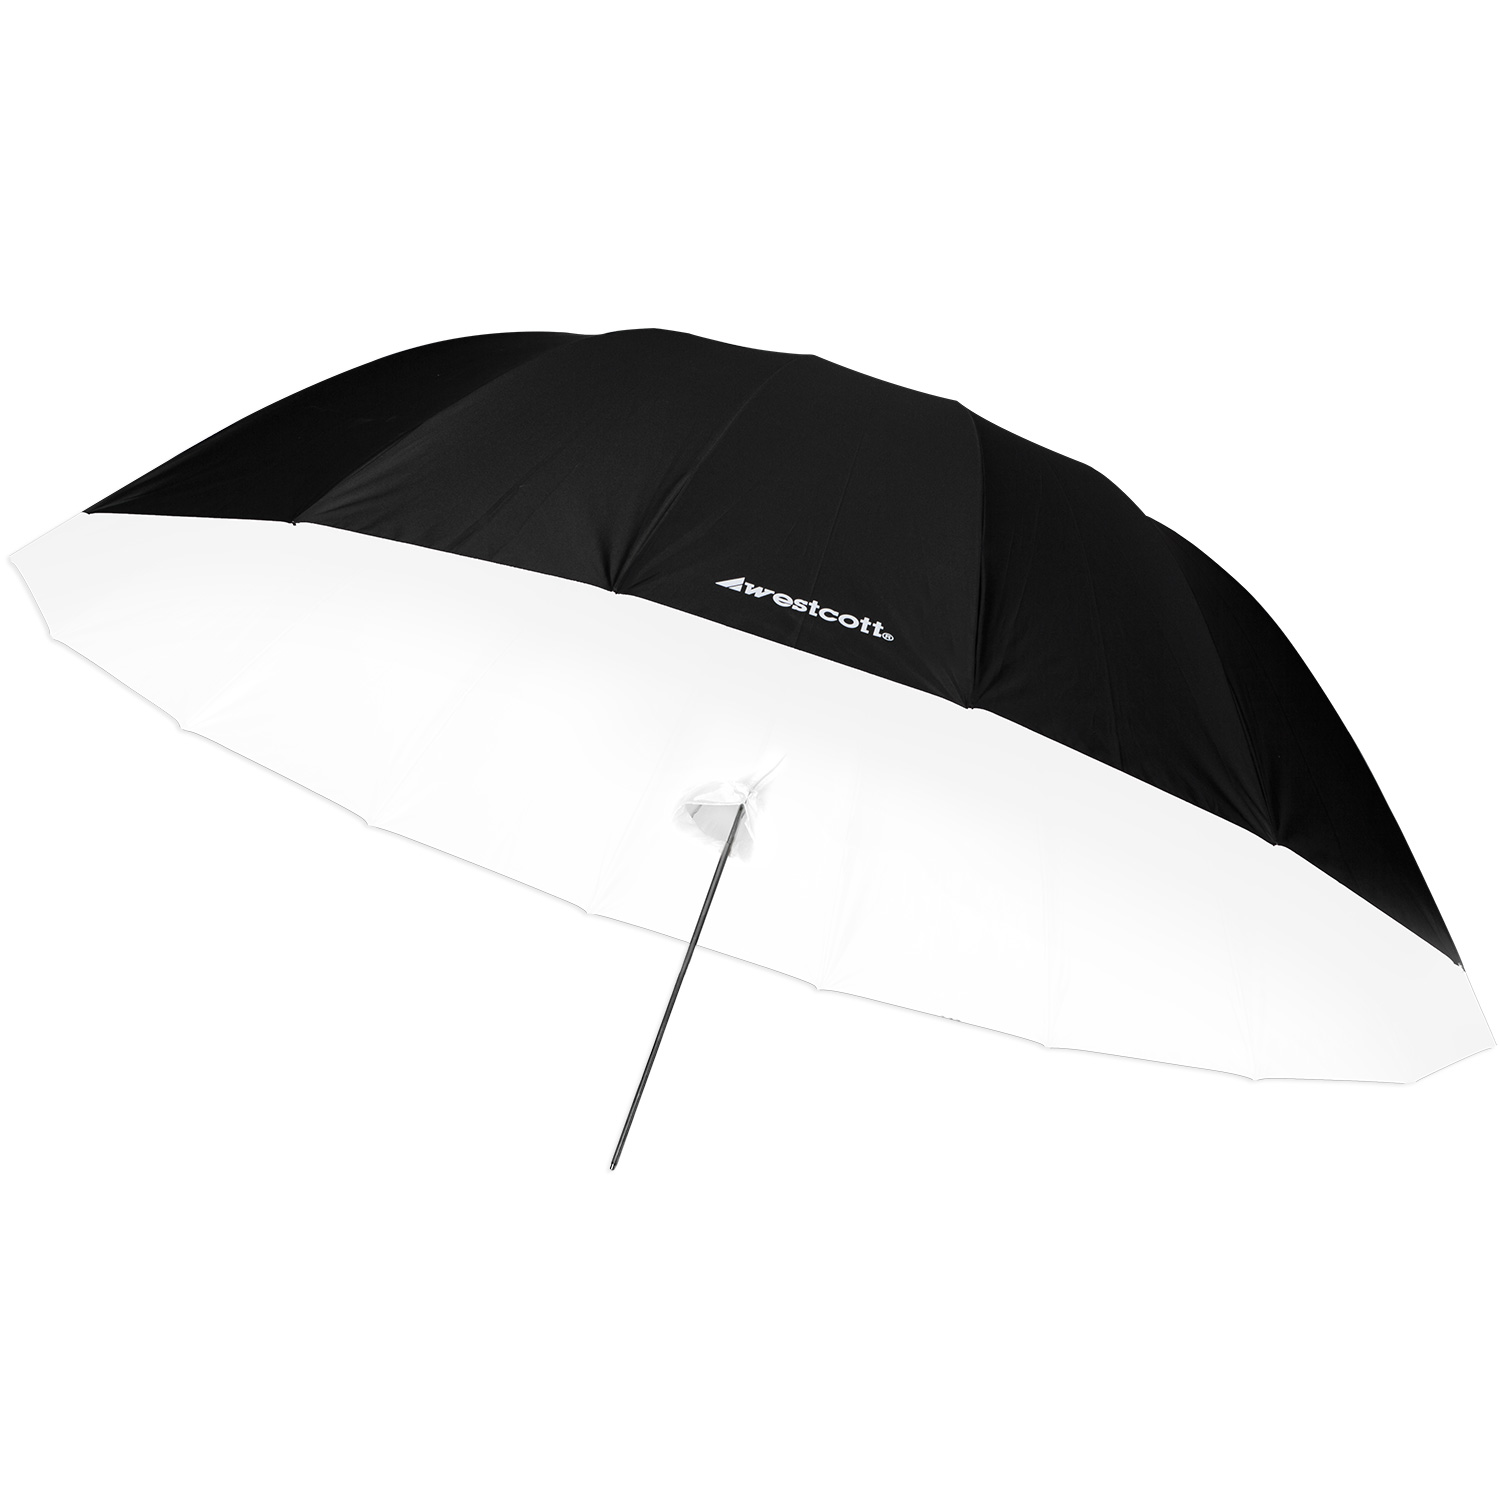 White Diffusion Fabric for 7' Umbrella